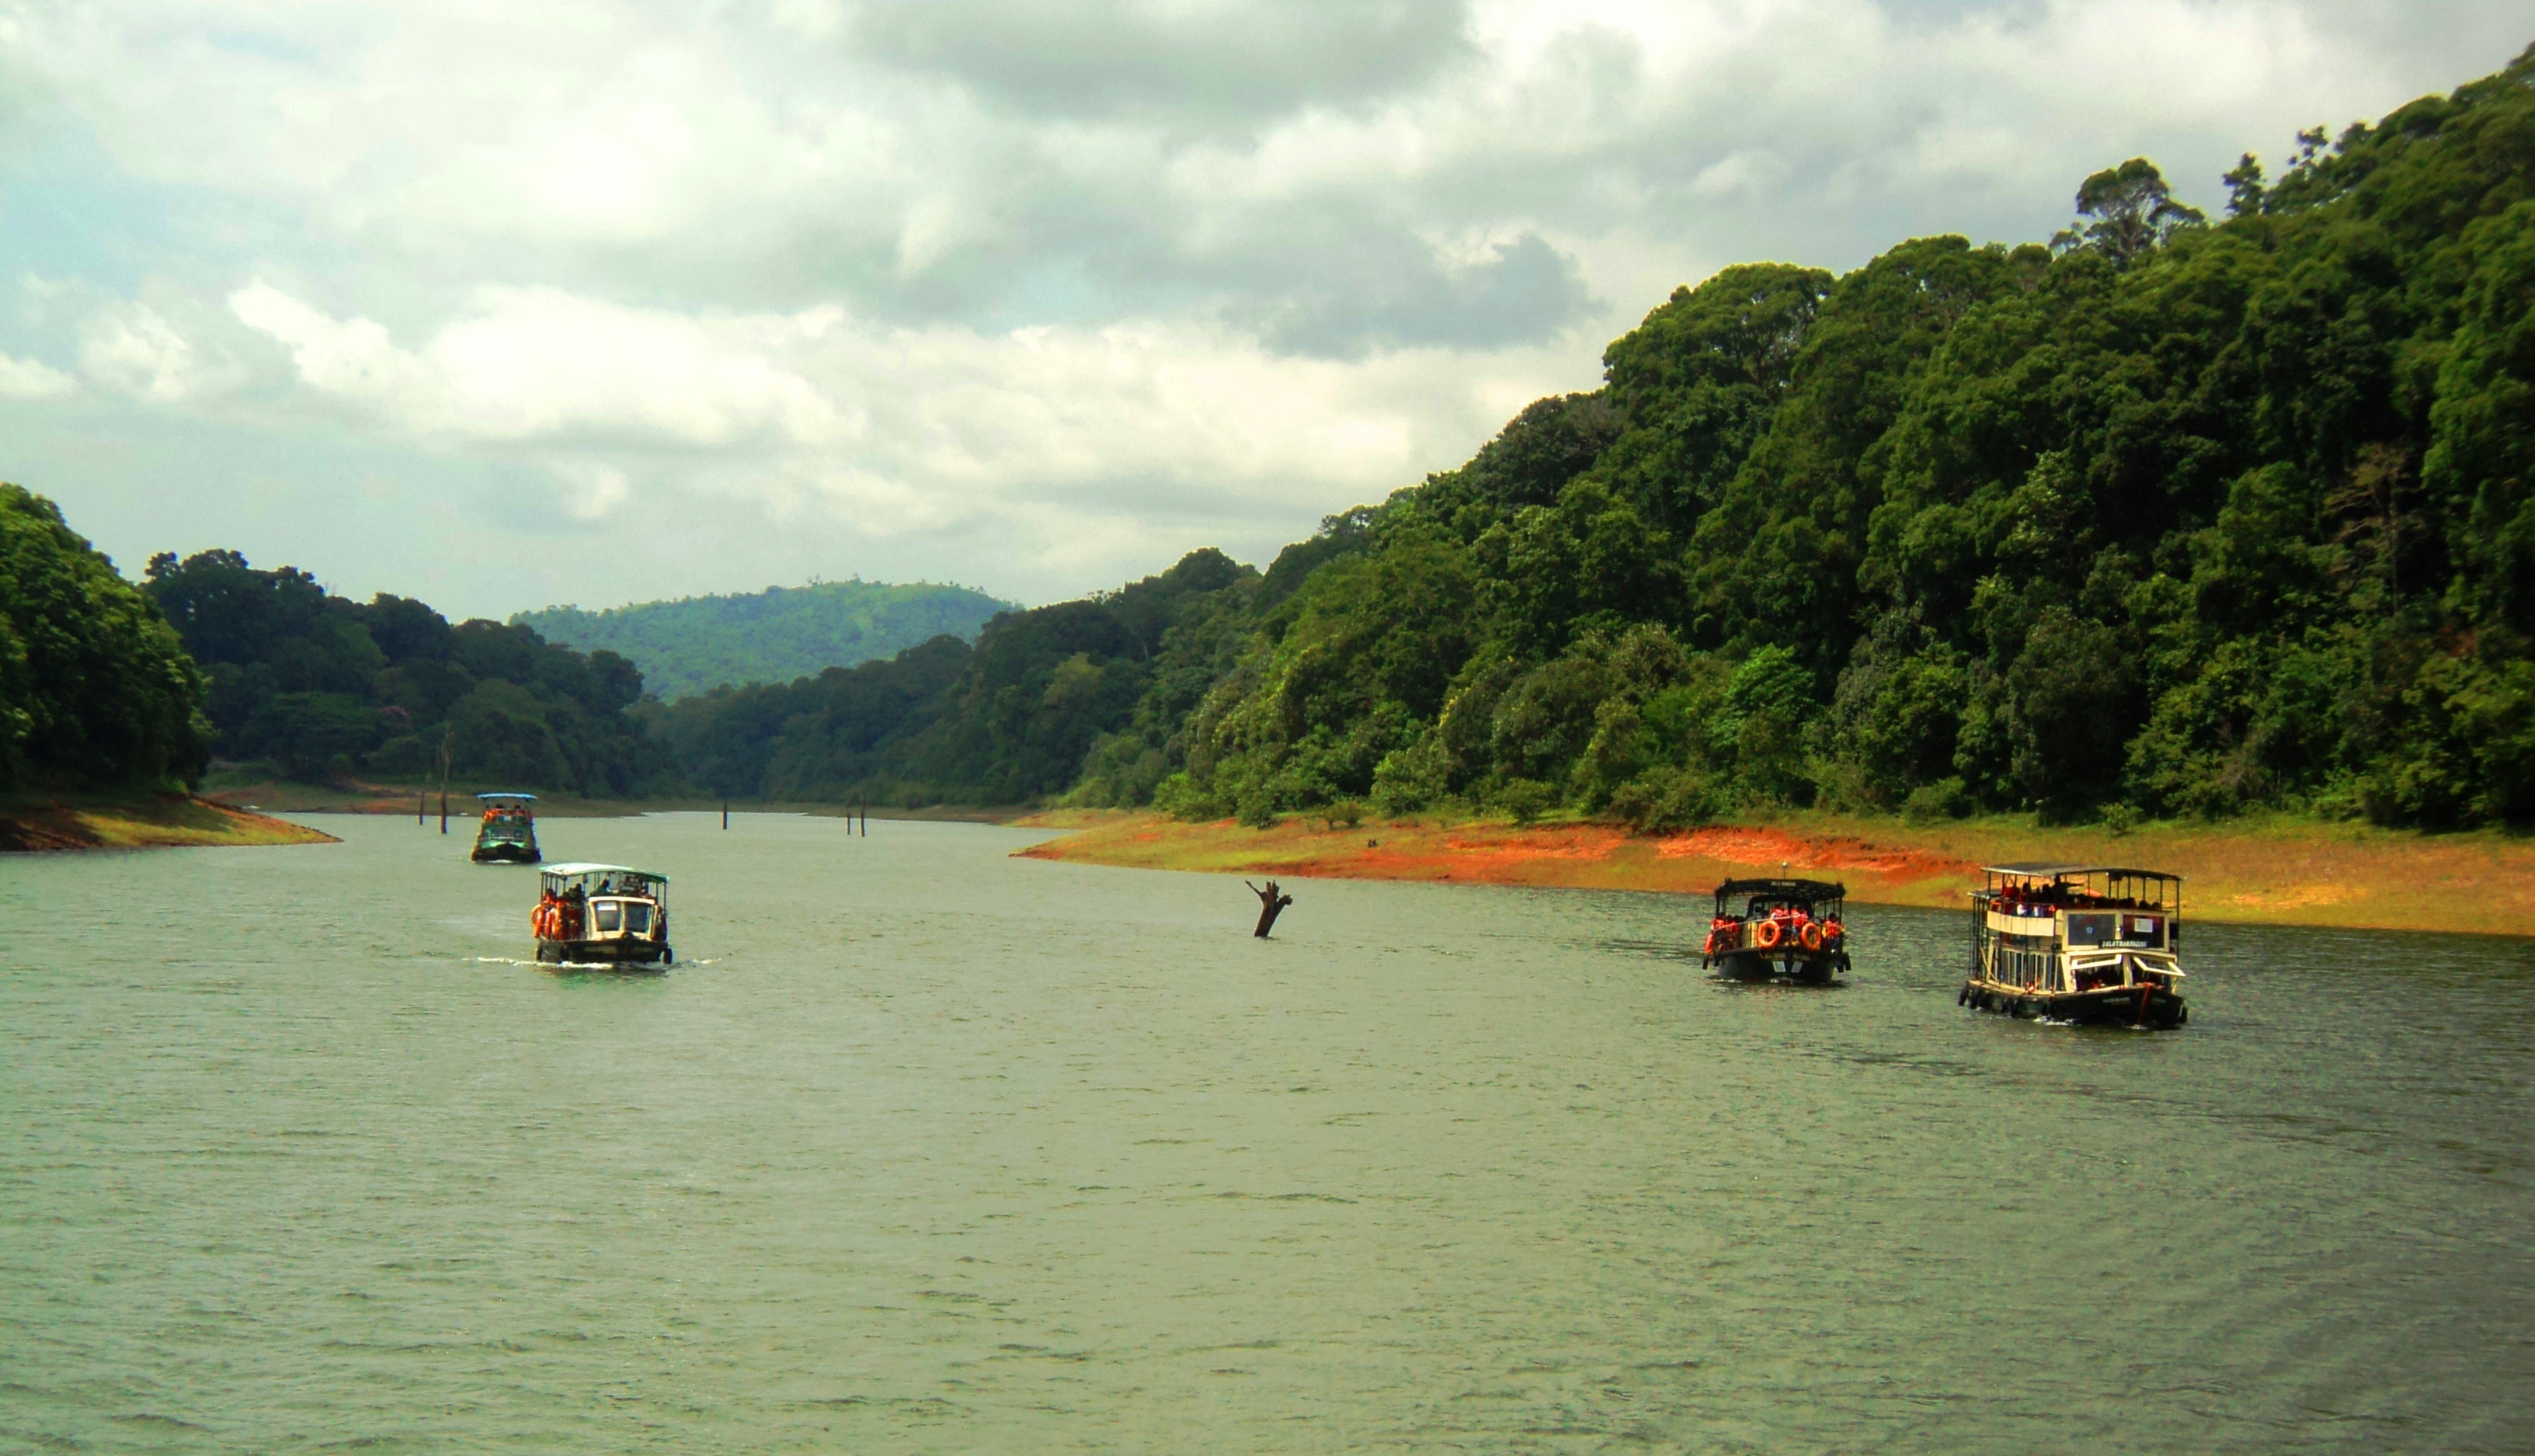 Keralatravels Com Offers Customised Tours And Travels